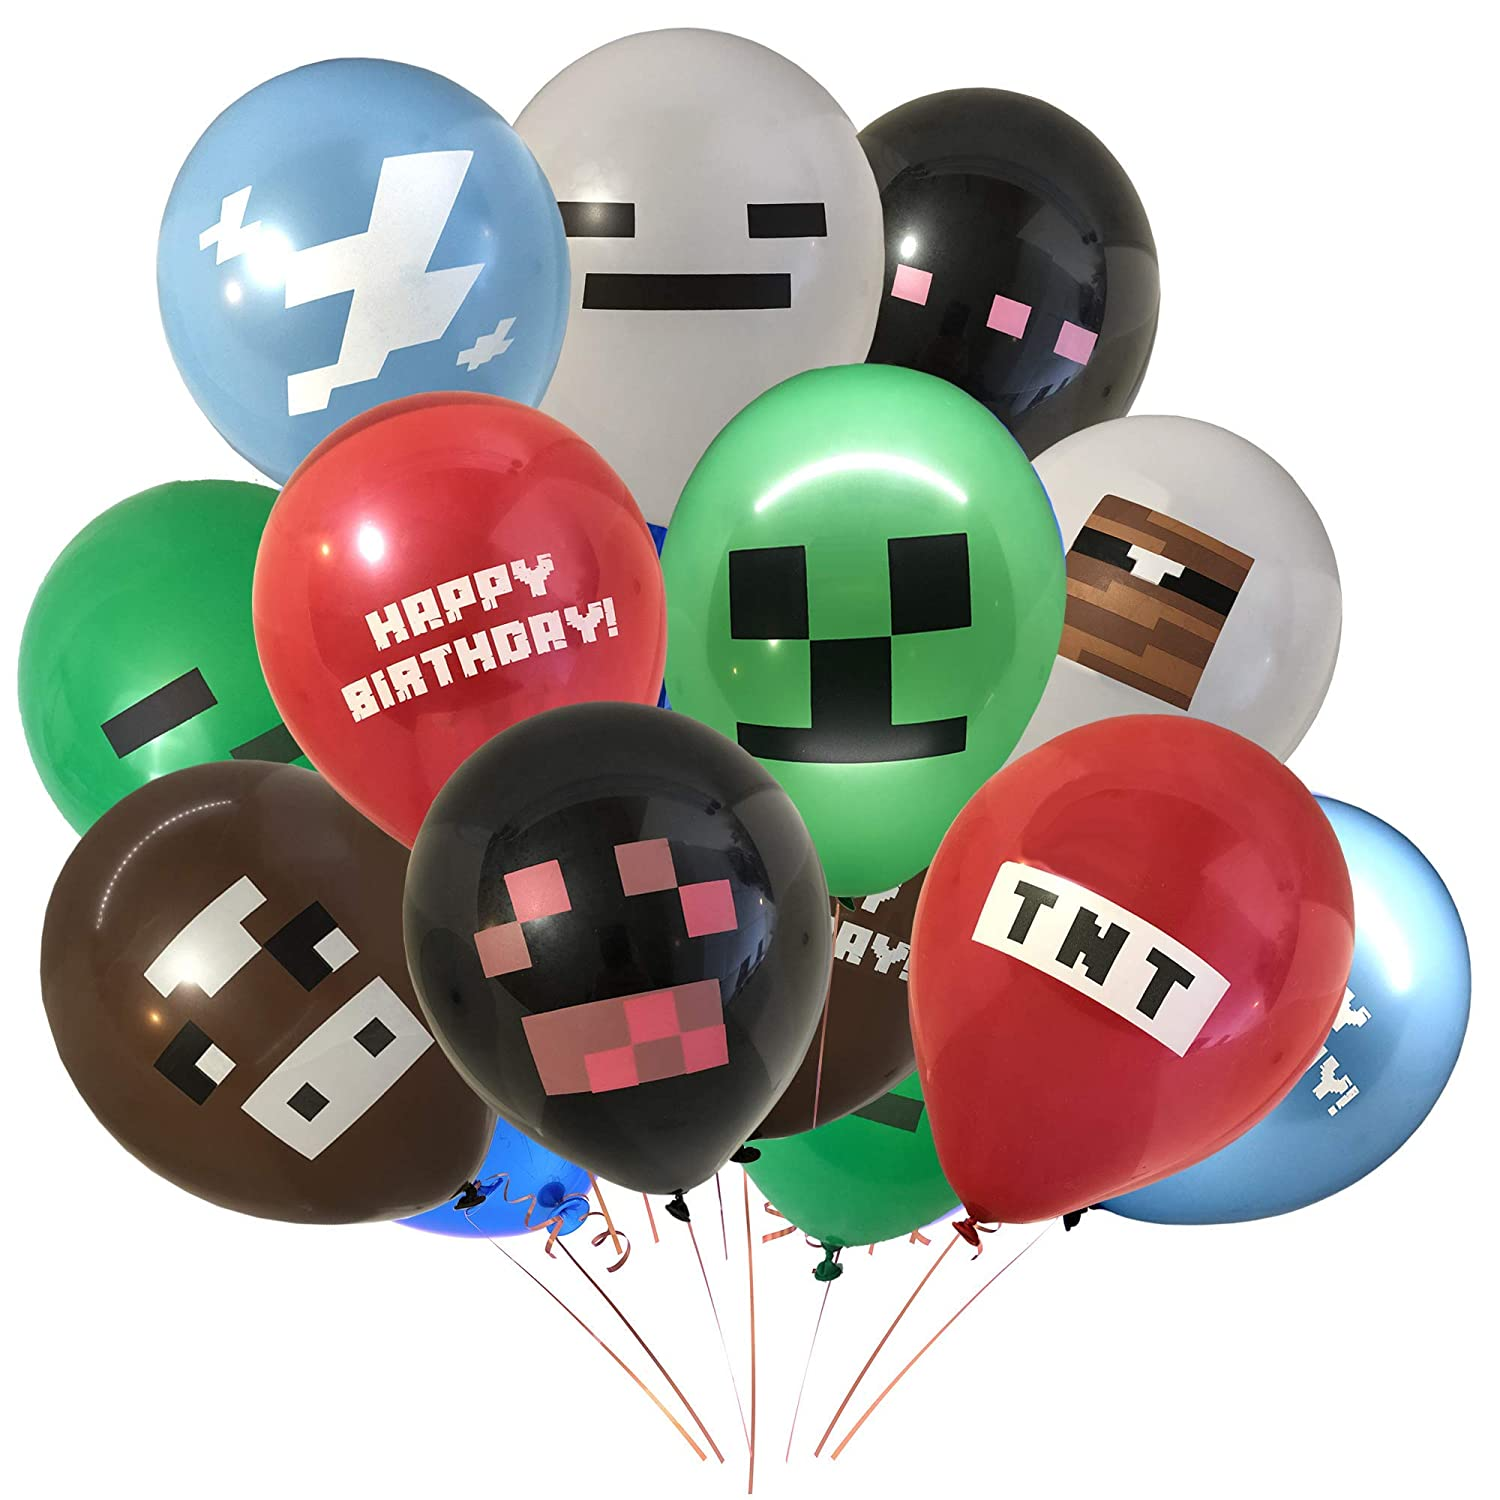 Giant 24 Pack of Pixel Miner Crafting Style Gamer Party Balloons - Large 12' Latex Balloon - Gamer Birthday Party Supplies - TNT, Cow, Ghost, Cloud, Creepah, Spider Party Decorations